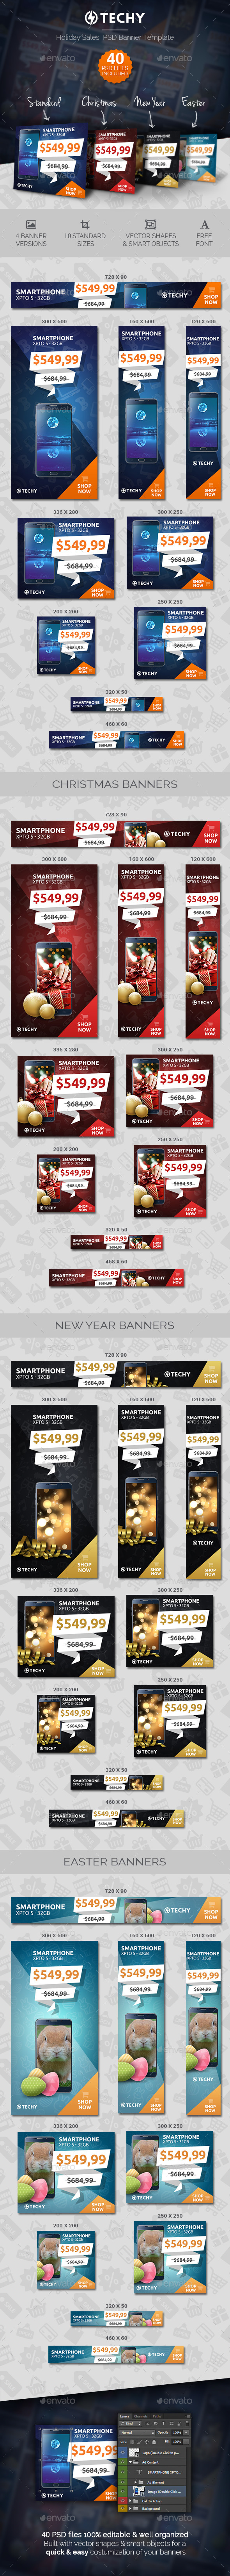 Techy - Holiday Sales PSD Banner Template - Banners & Ads Web Elements